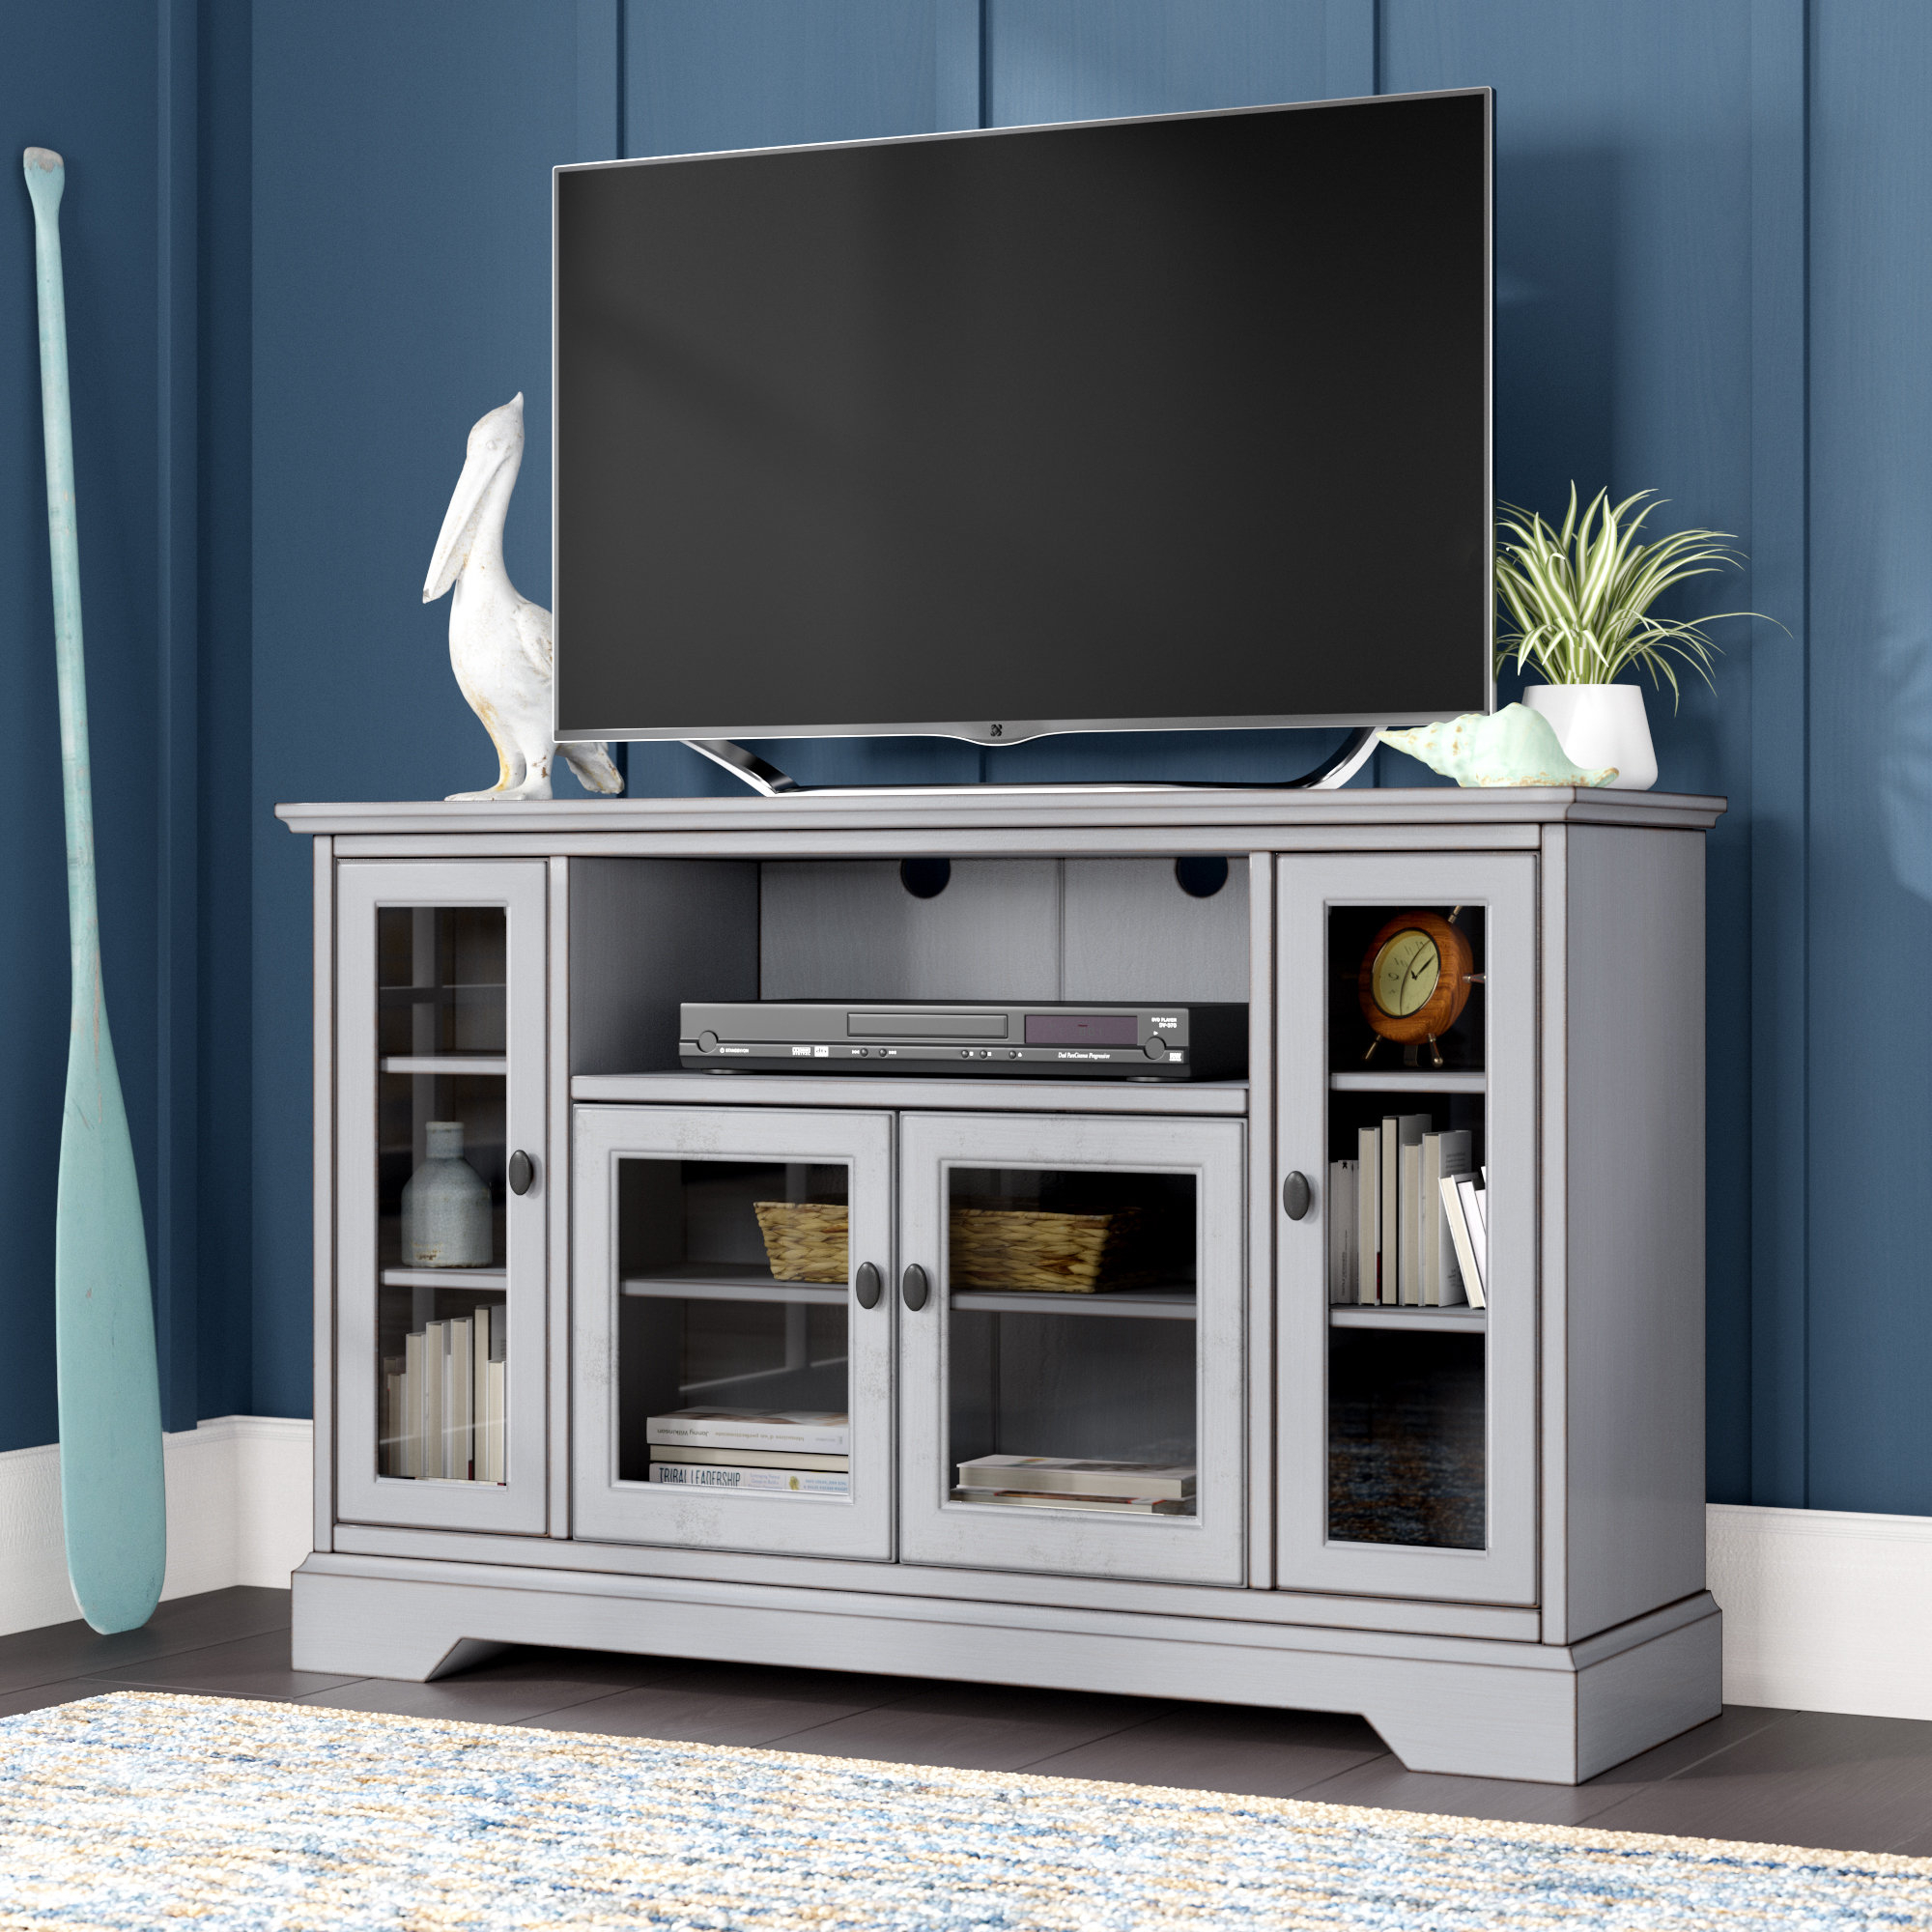 75 Inch Tv Stand | Wayfair Within Laurent 60 Inch Tv Stands (Photo 14 of 30)